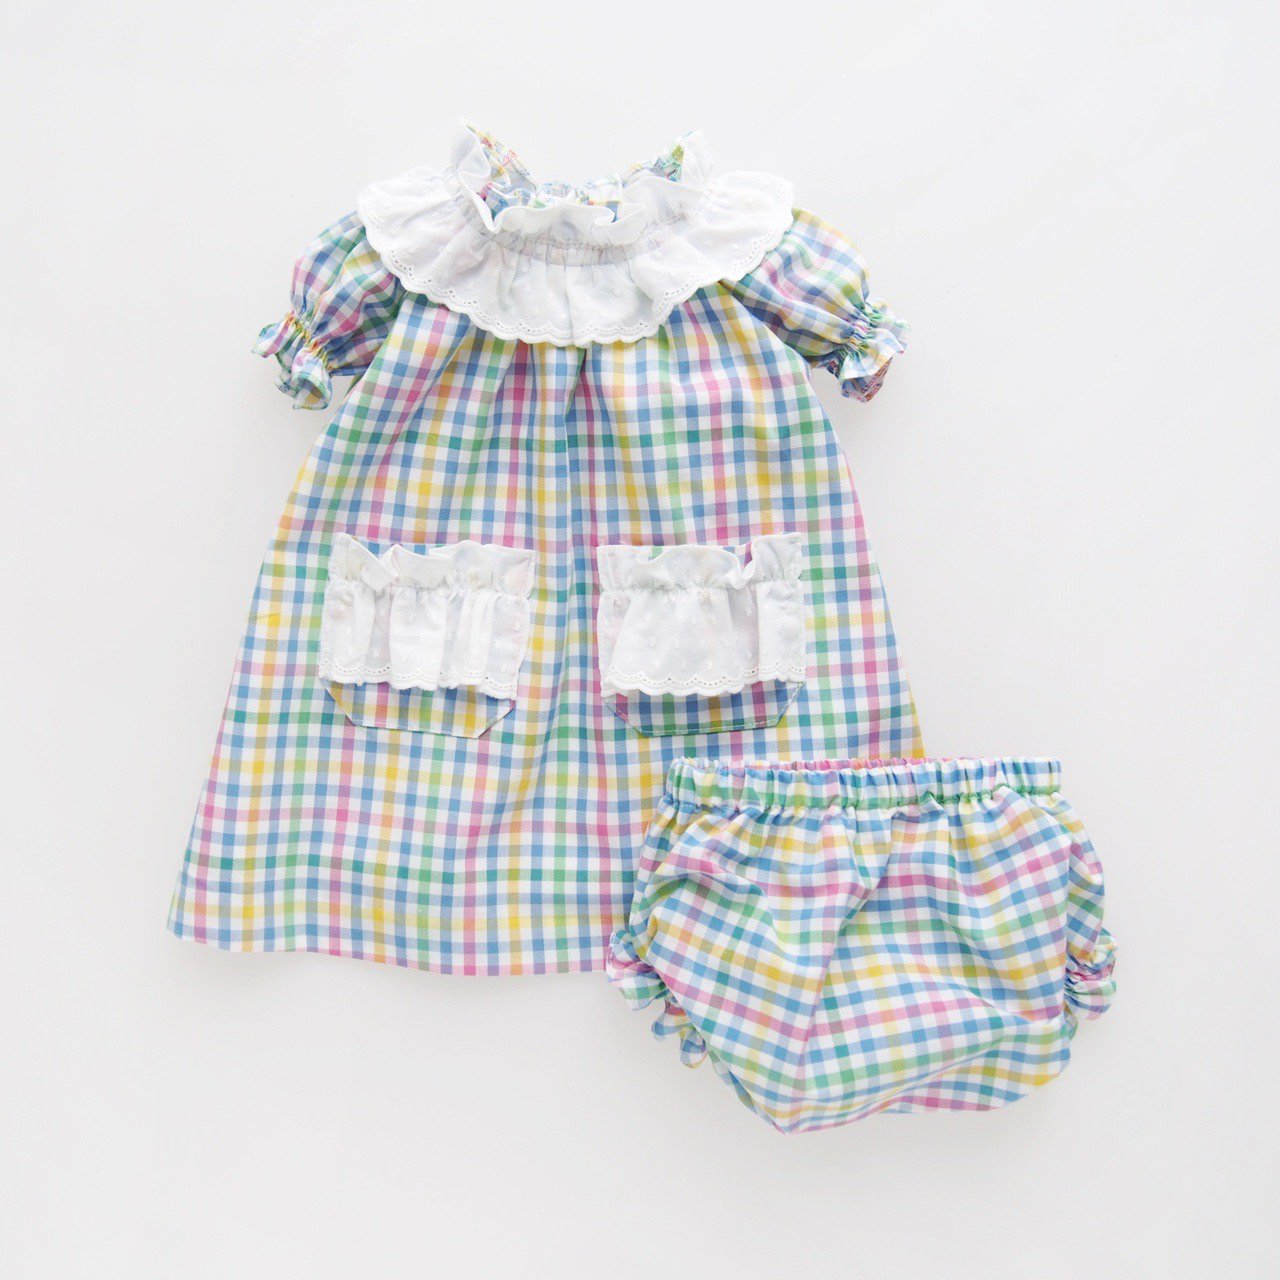 <img class='new_mark_img1' src='https://img.shop-pro.jp/img/new/icons14.gif' style='border:none;display:inline;margin:0px;padding:0px;width:auto;' />Pi & Pa - Multi gingham baby girl set